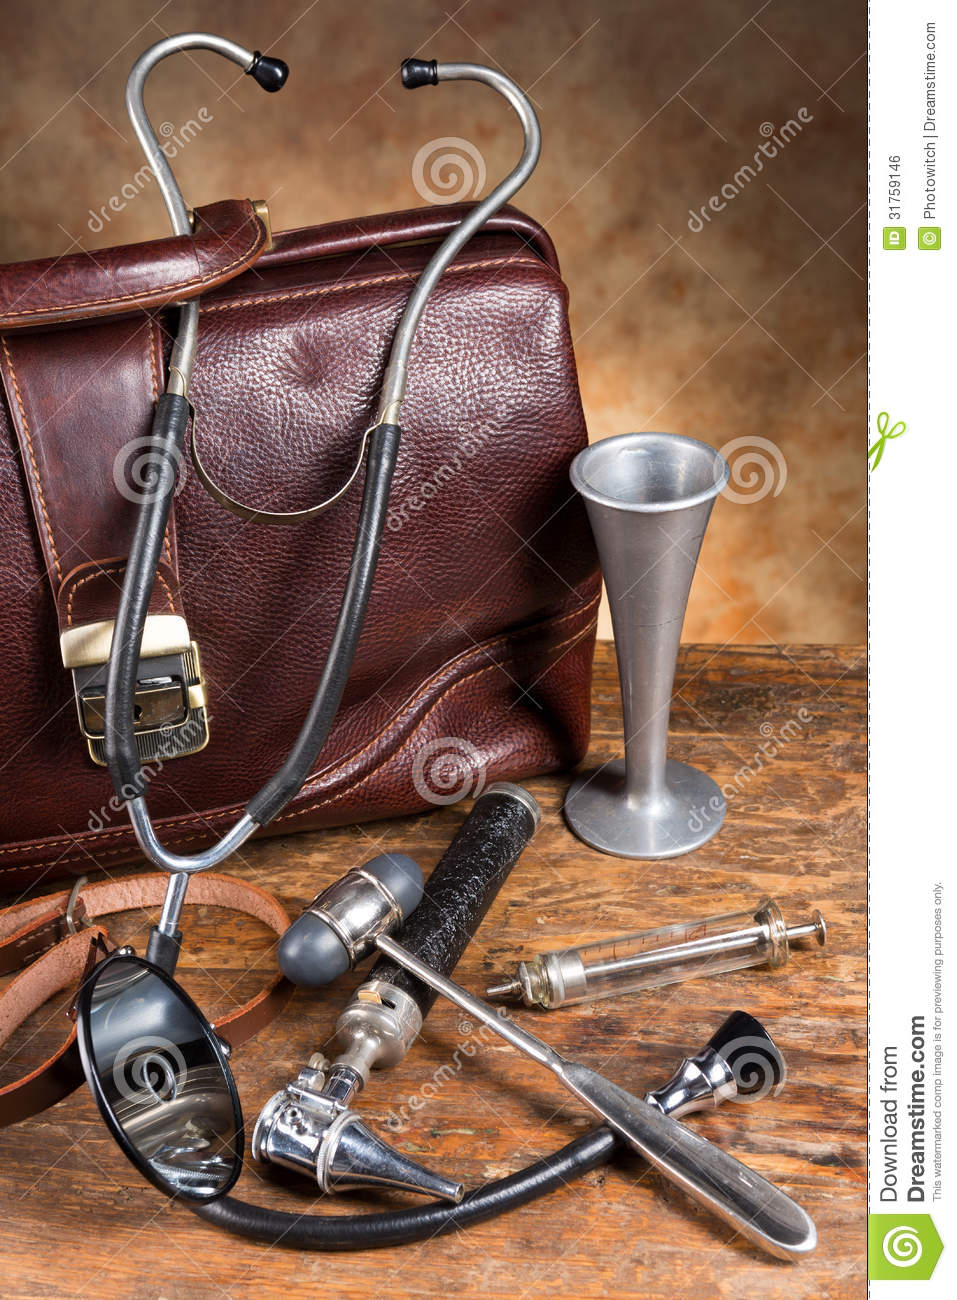 Vintage Doctor S Instruments Royalty Free Stock Image